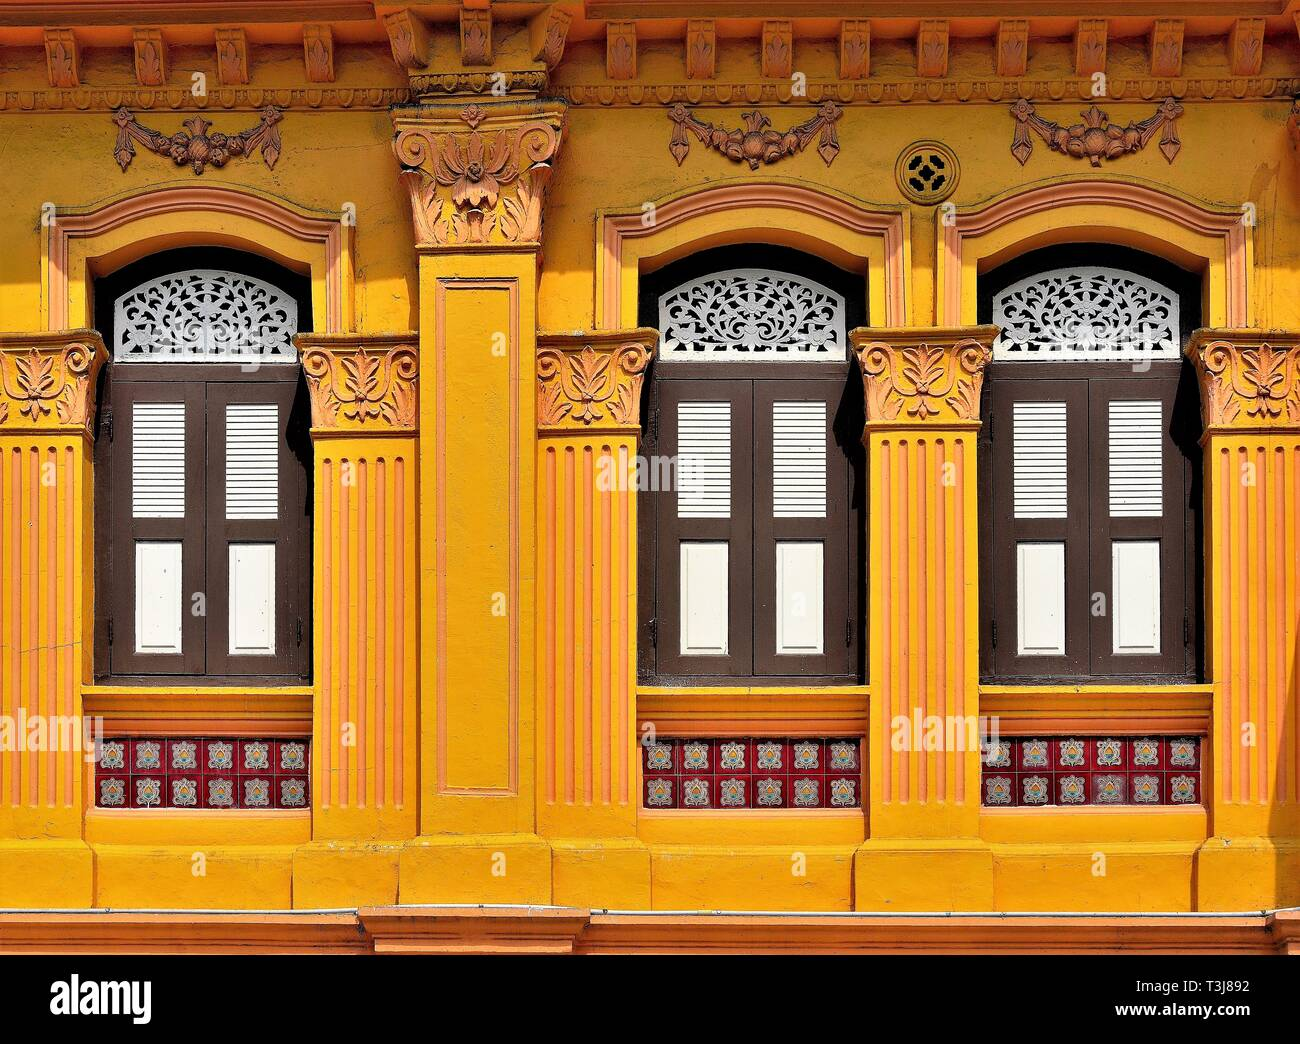 Traditional Straits Chinese or Peranakan vintage shop house with antique wooden shutters and orange exterior in Little India Singapore - Stock Image